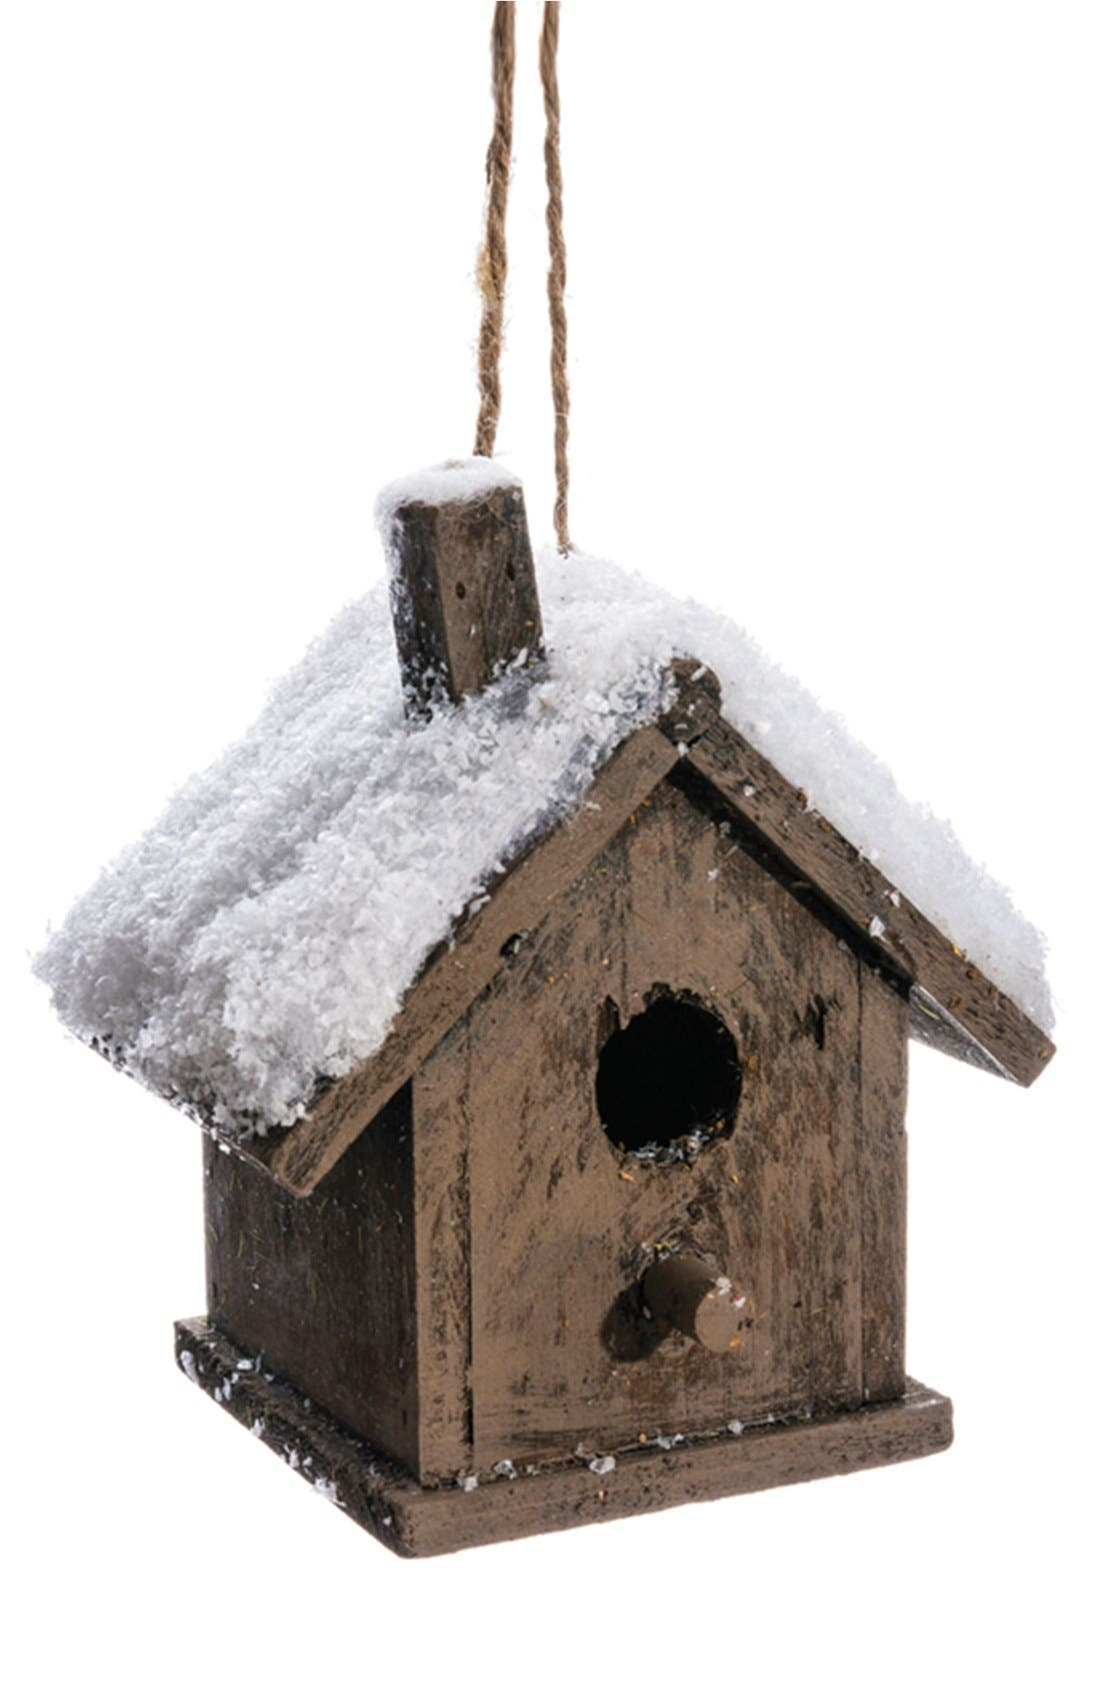 Alternate Image 1 Selected - ALLSTATE Snowy Wood Birdhouse Ornament